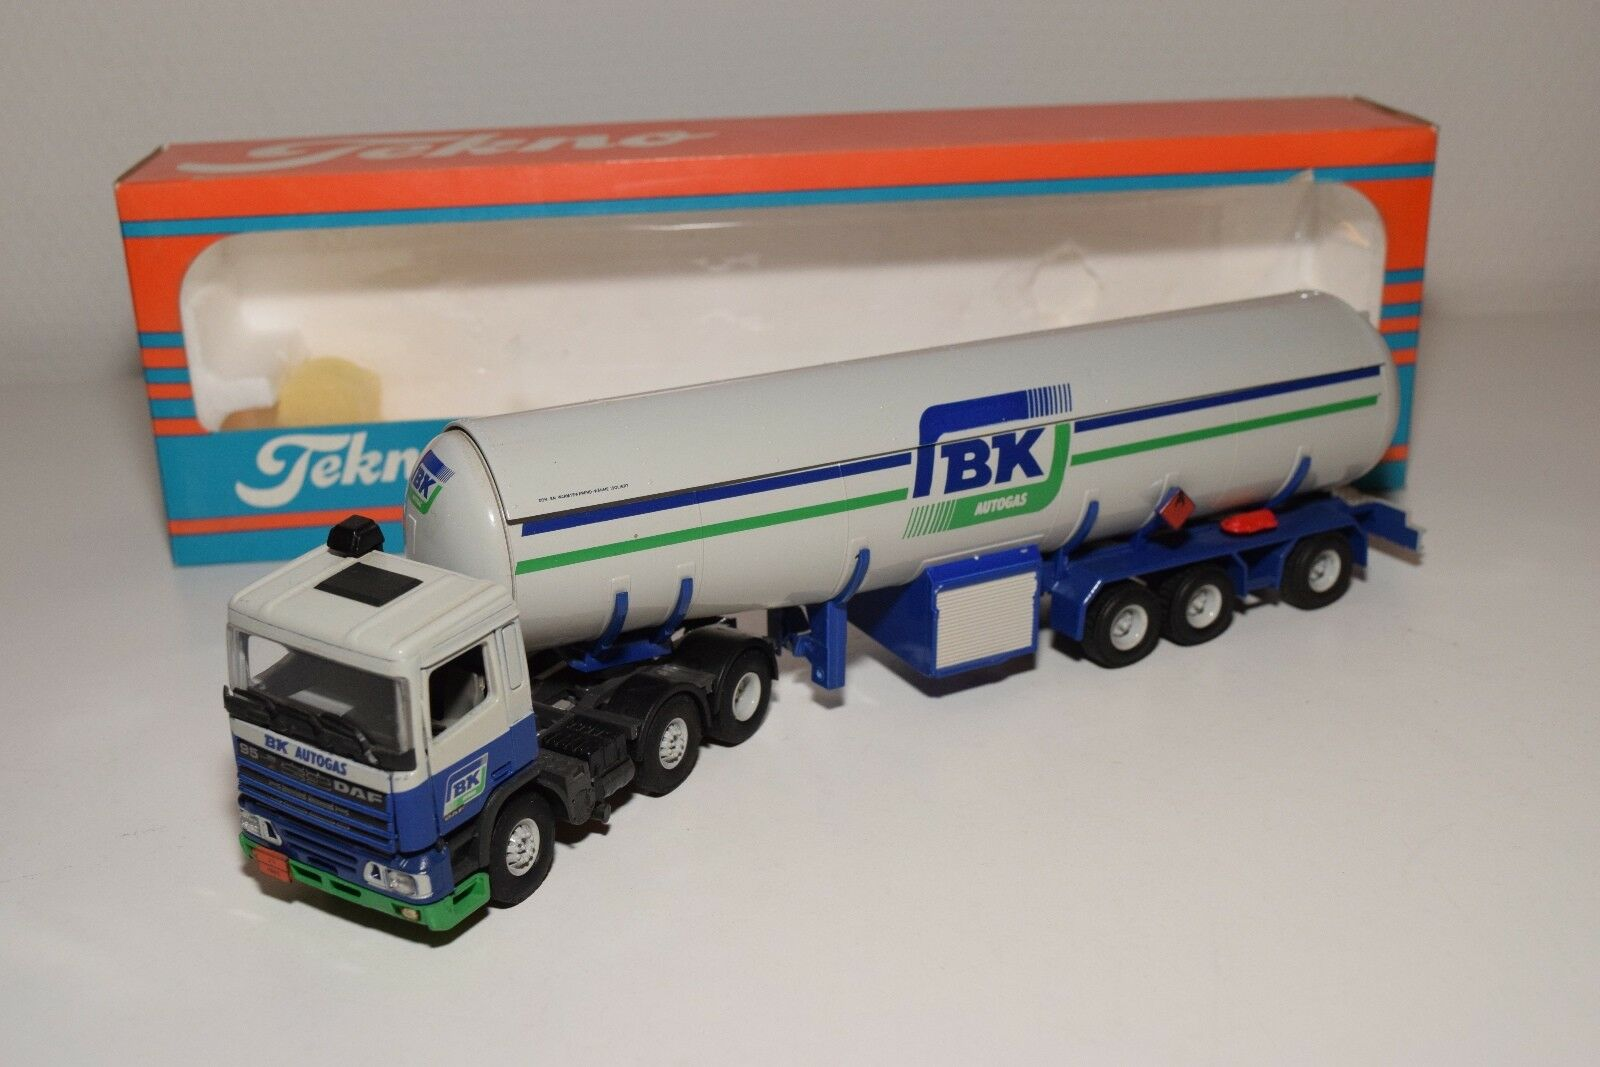 S TEKNO DAF 95 TRUCK WITH TANKER TRAILER BK AUTOGAS MINT BOXED